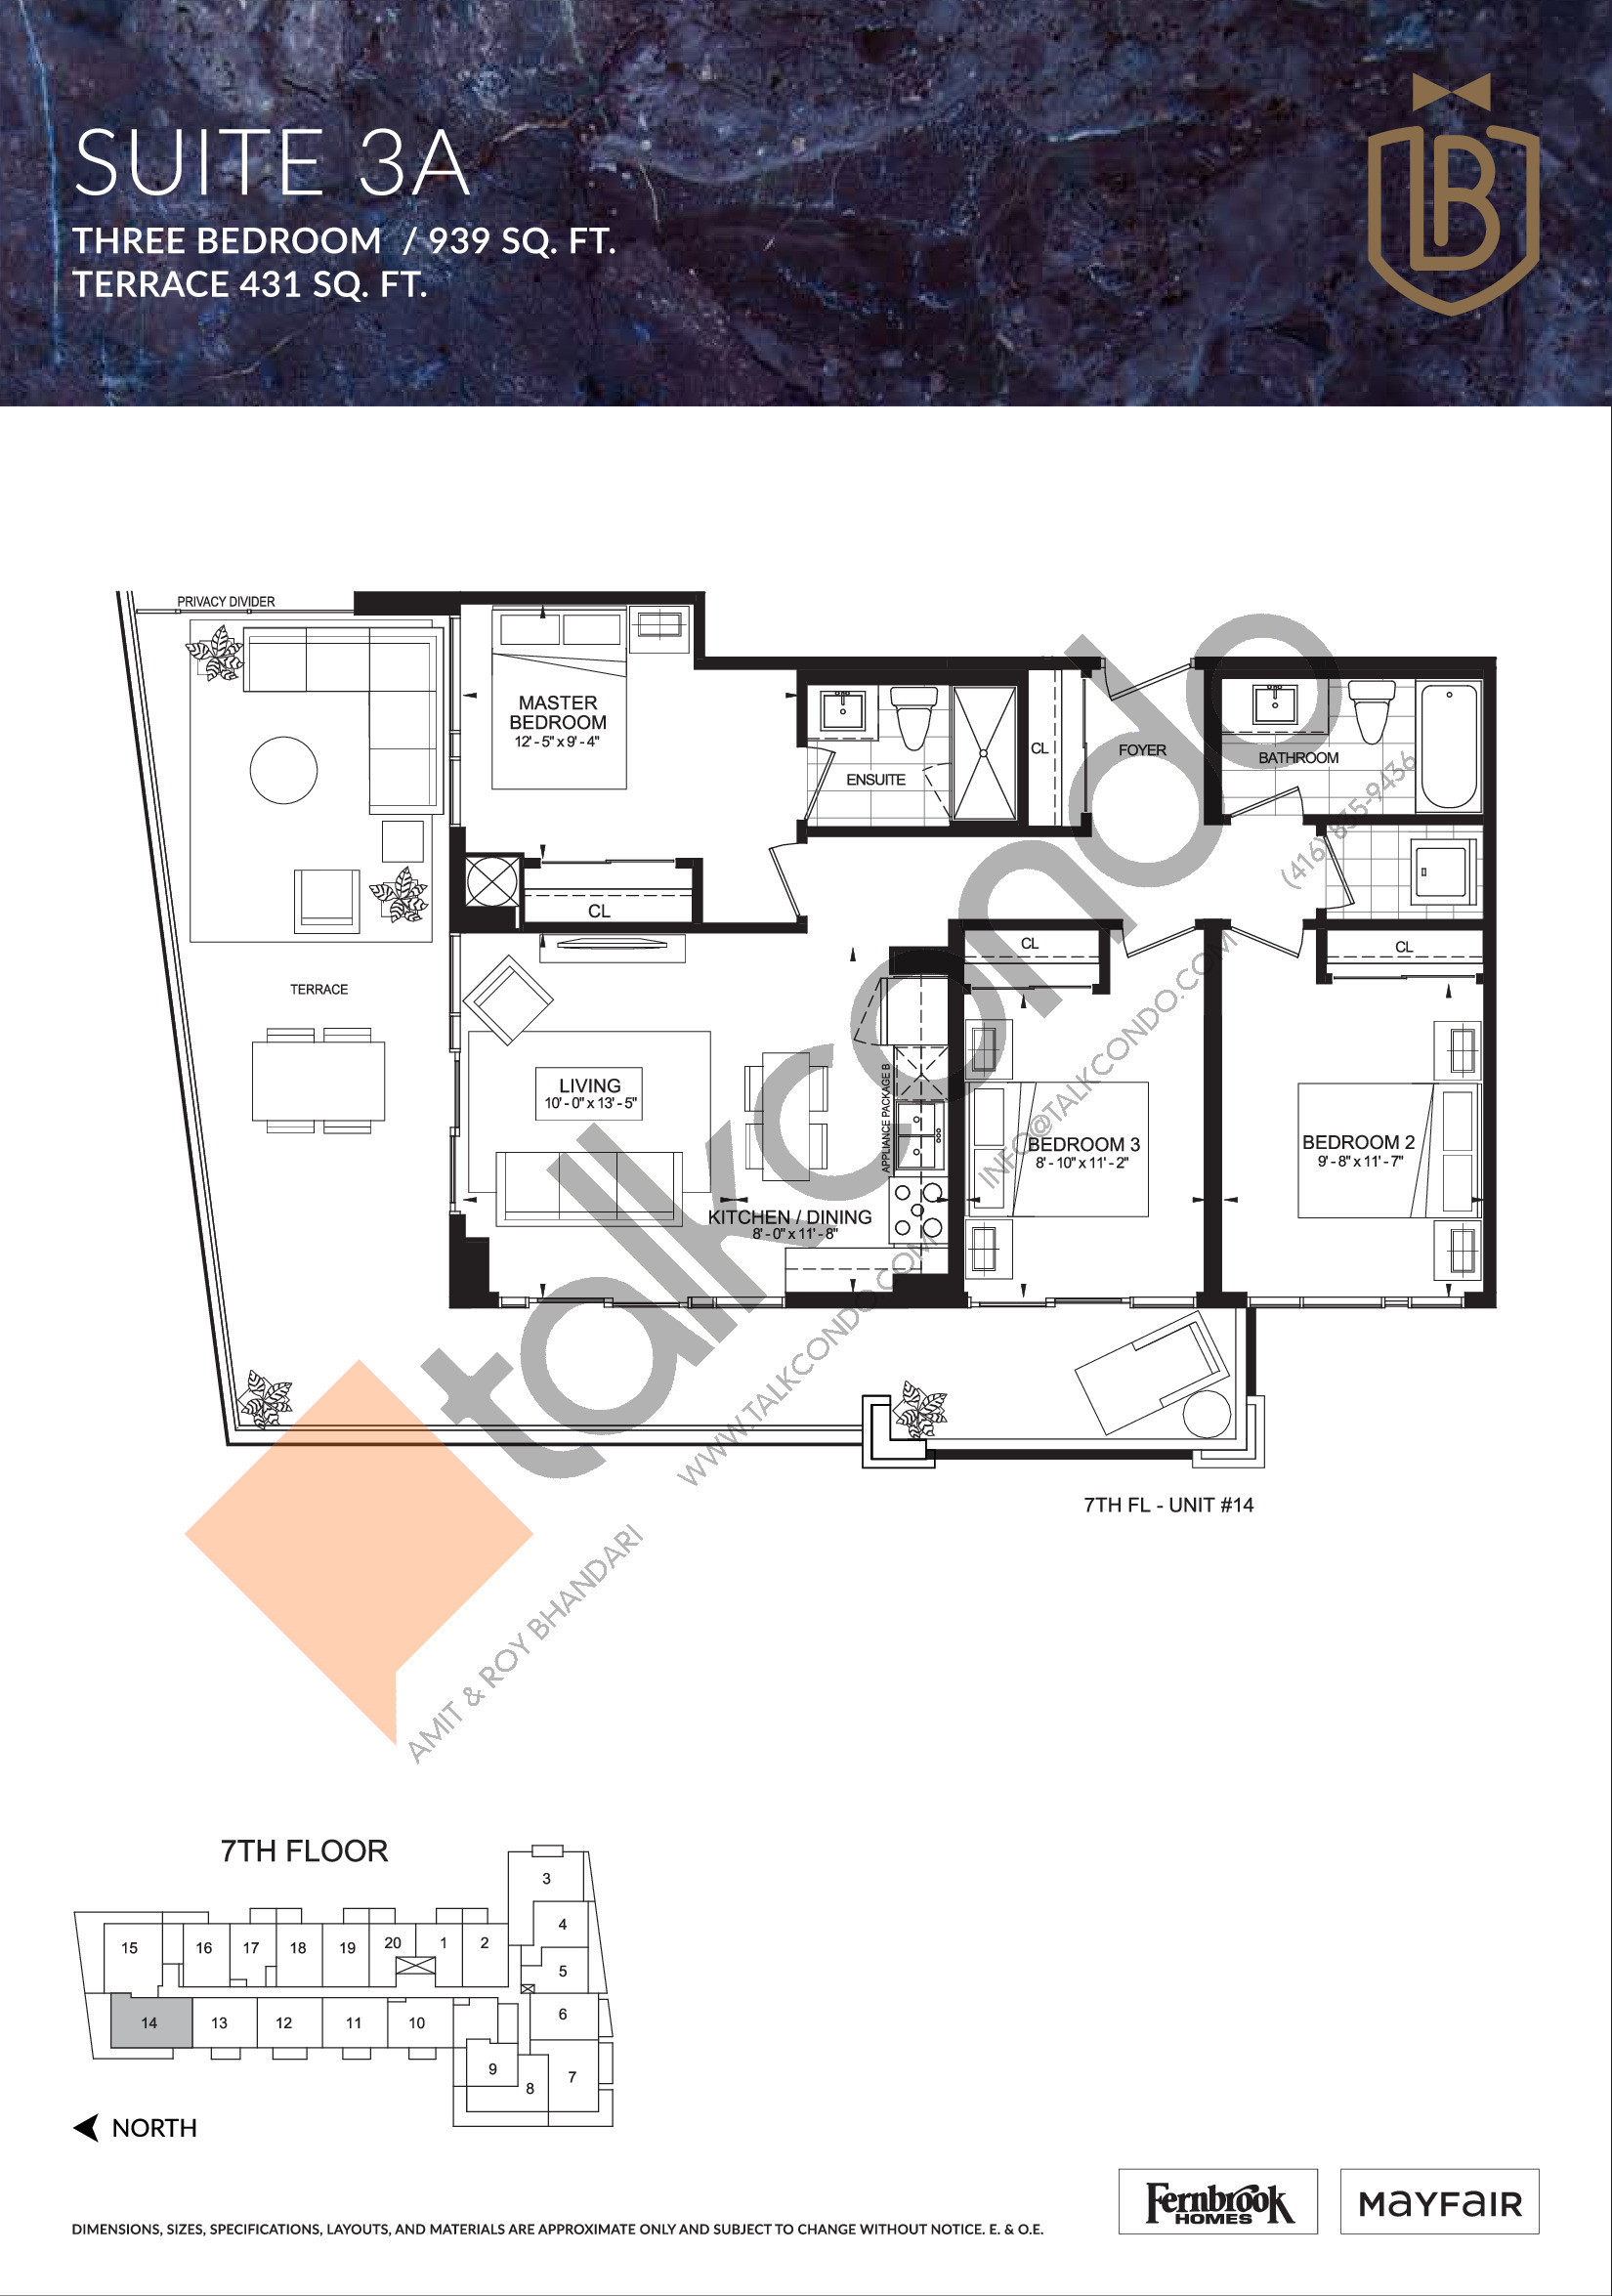 Suite 3A (Terrace) Floor Plan at The Butler Condos - 939 sq.ft